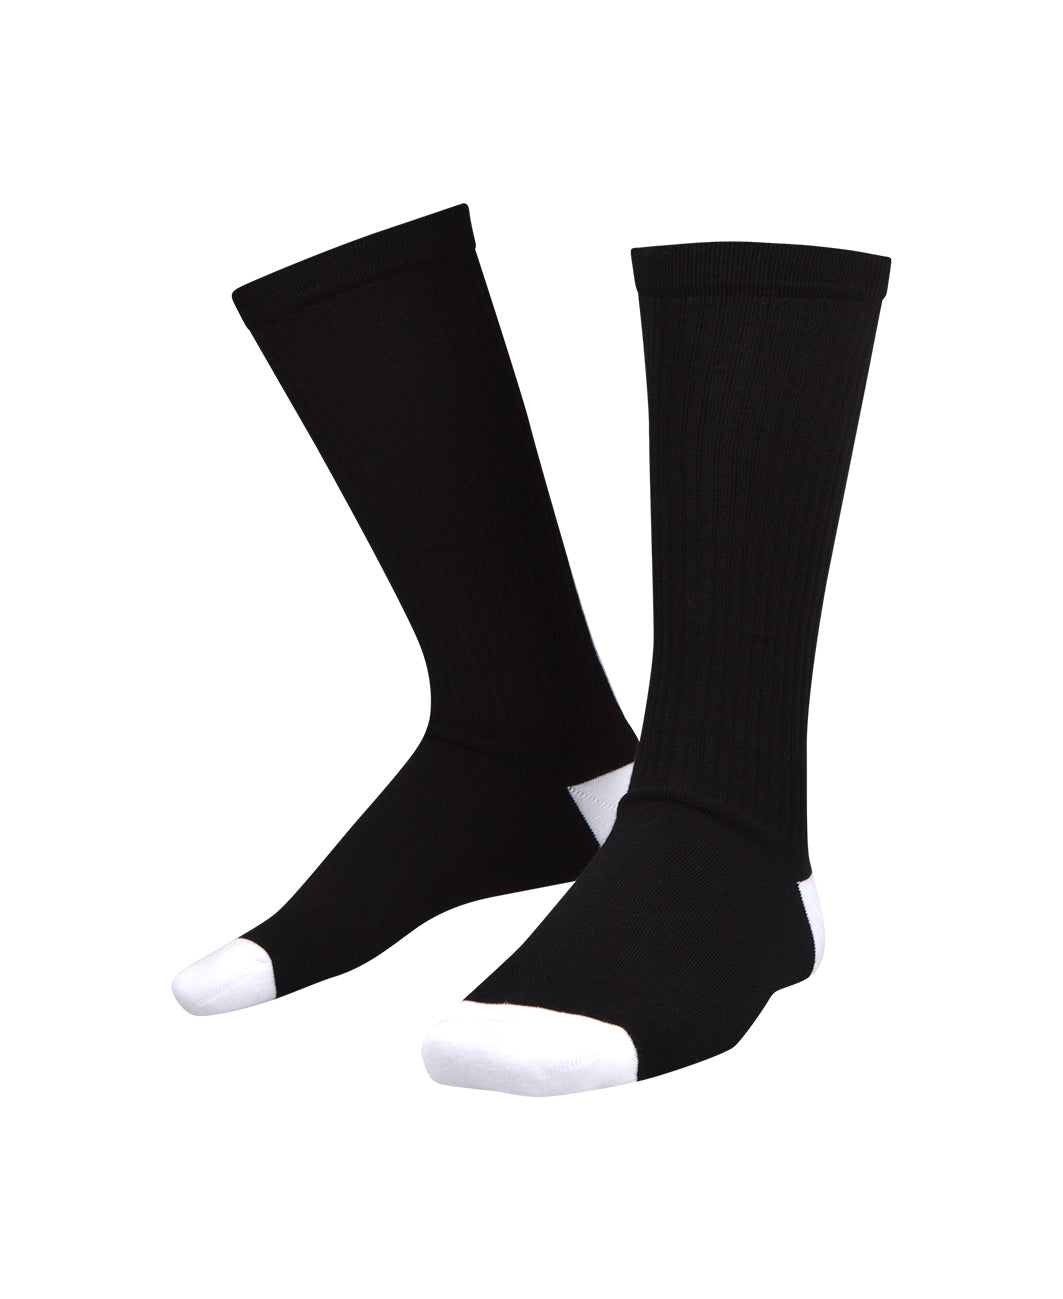 Balmain - Knee Sock Balmain Logo on Back - 099037 - BRV125090 - Black